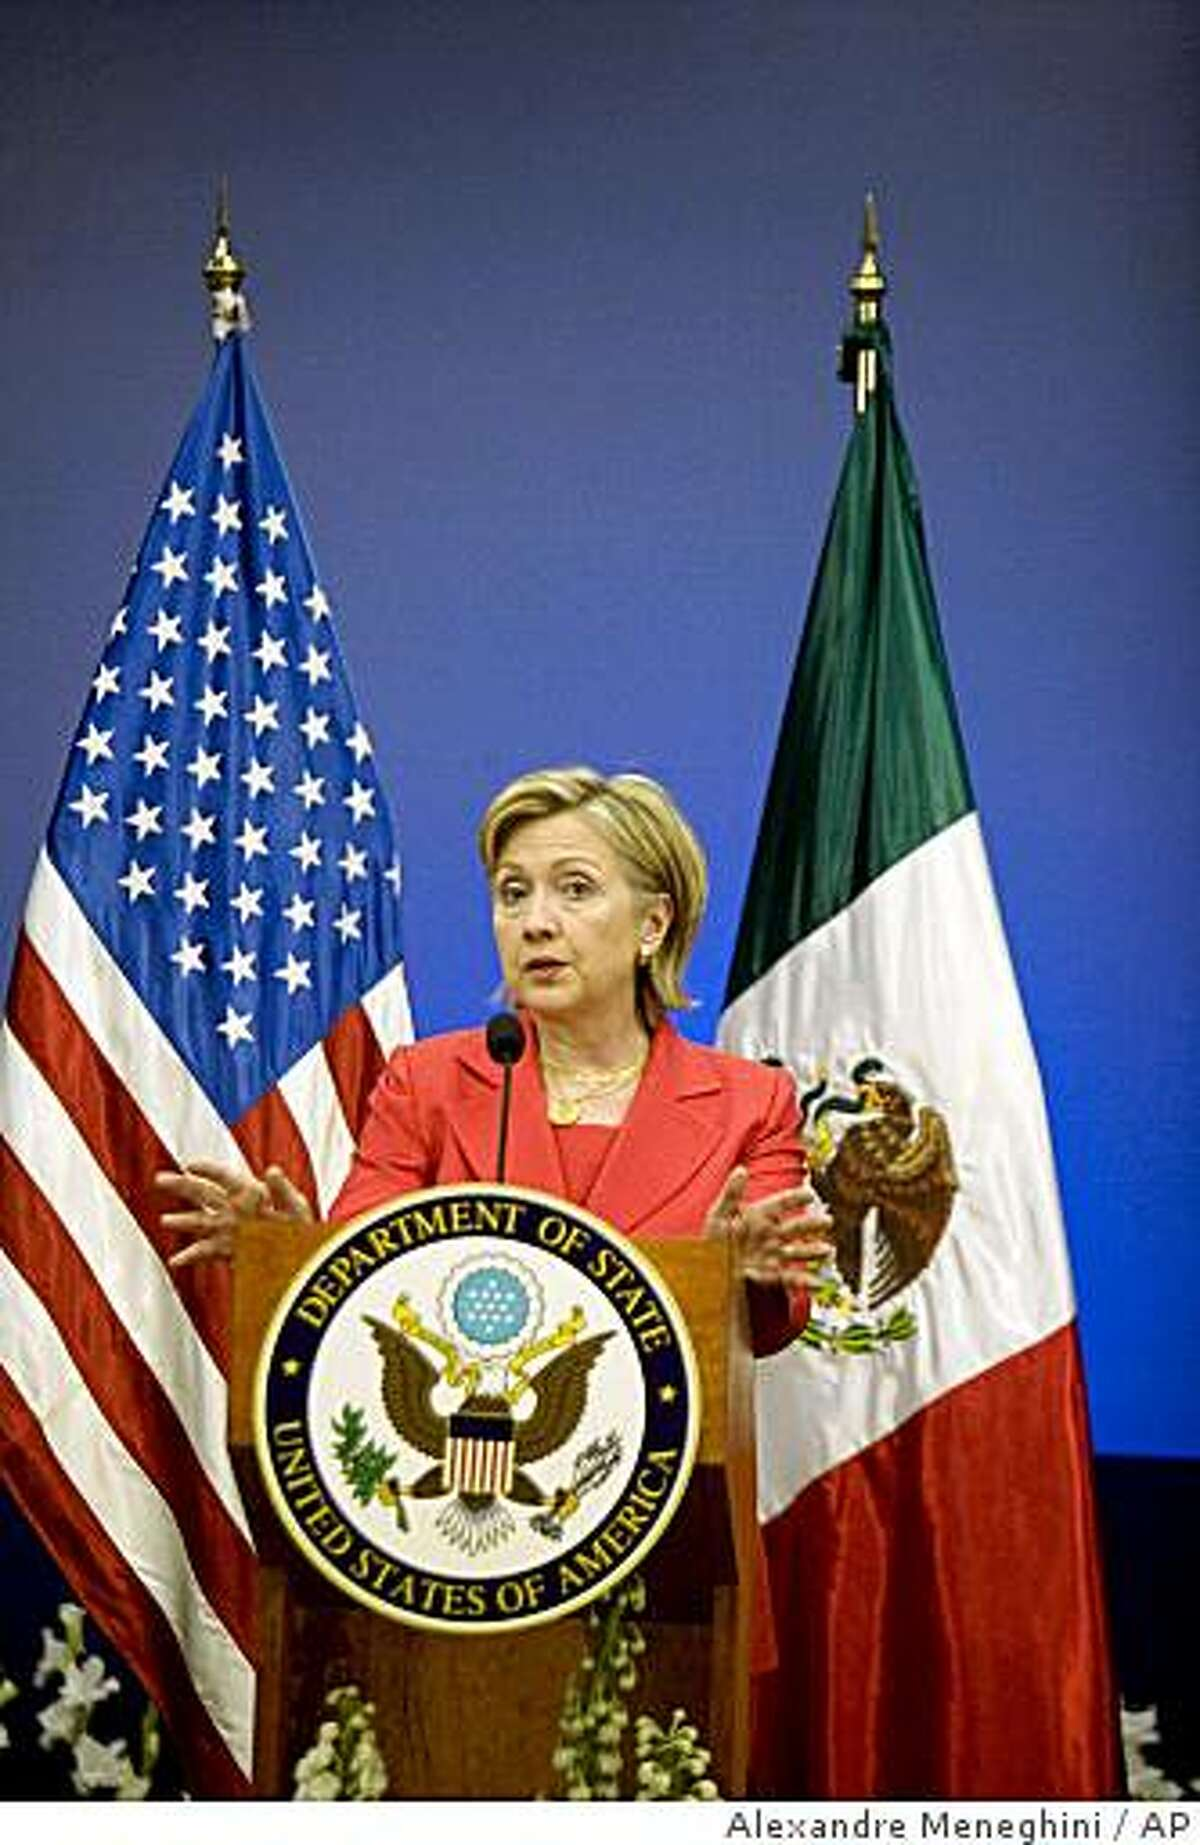 U.S. Secretary of State Hillary Rodham Clinton speaks during a press conference at the TecMilenio University in Monterrey, Mexico, Thursday, March 26, 2009. Clinton is on a two-day official visit to Mexico. (AP Photo/Alexandre Meneghini)